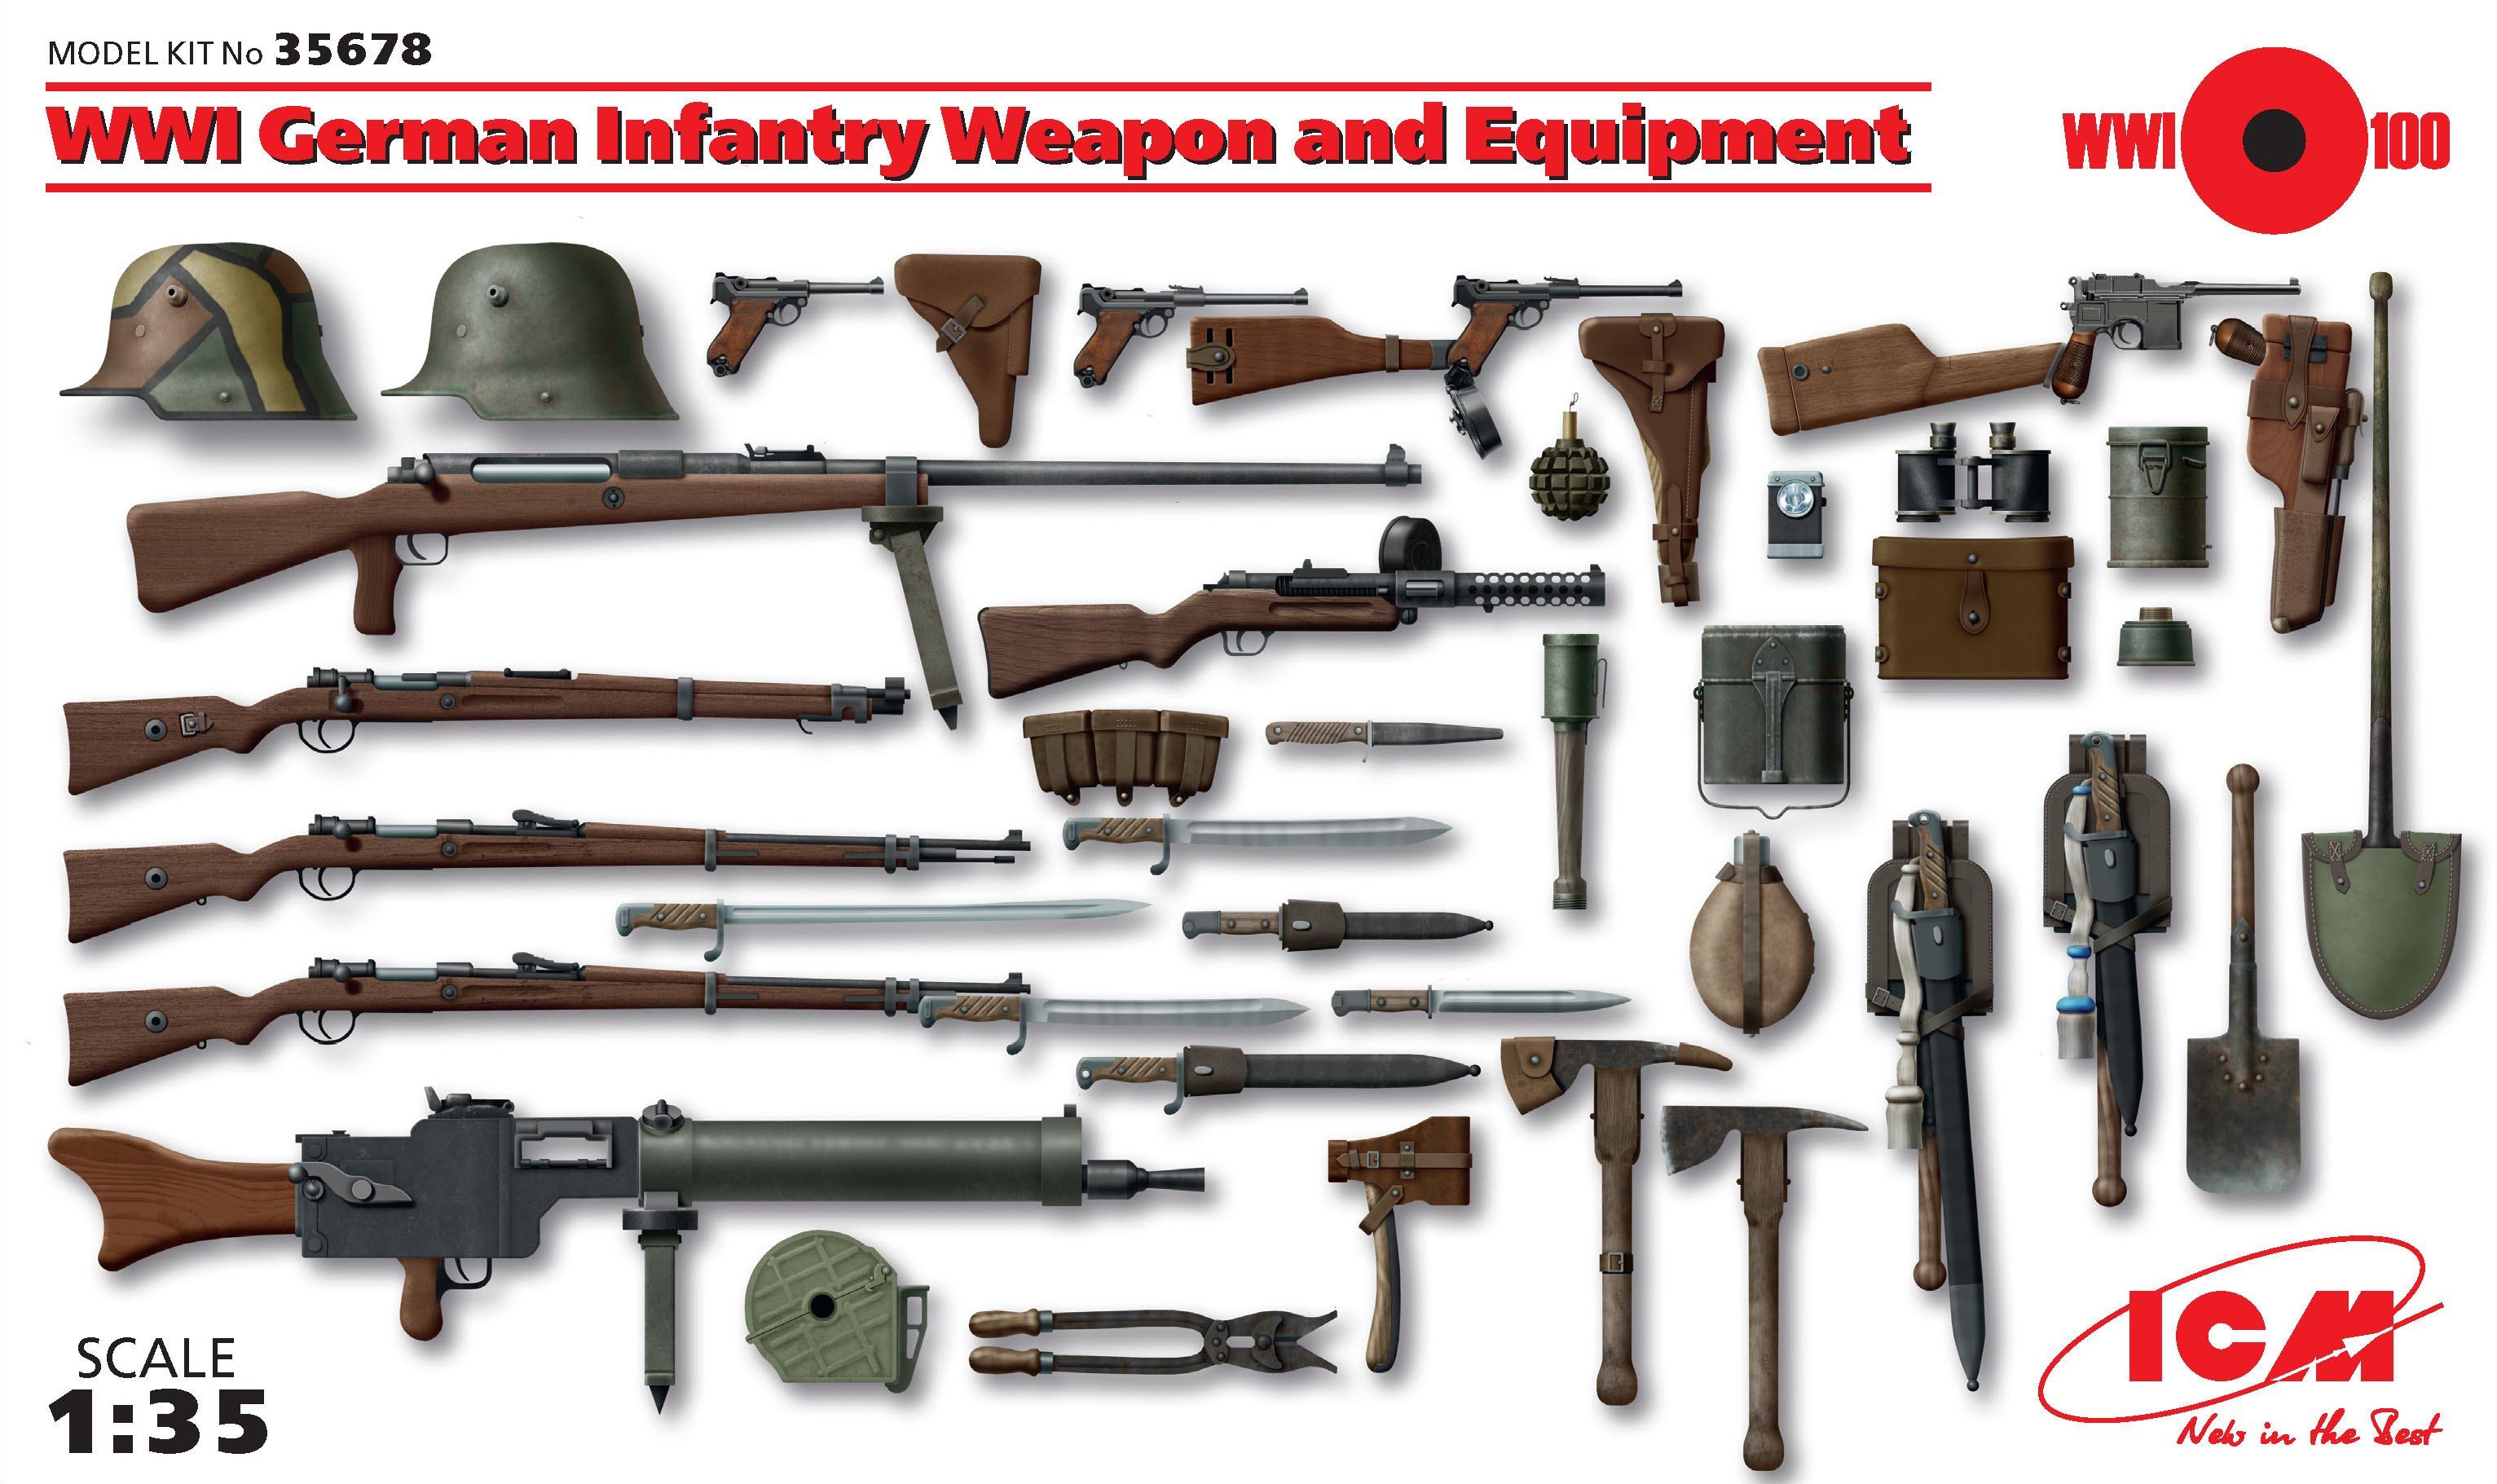 ICM WWI German Infantry Weapon and Equipment